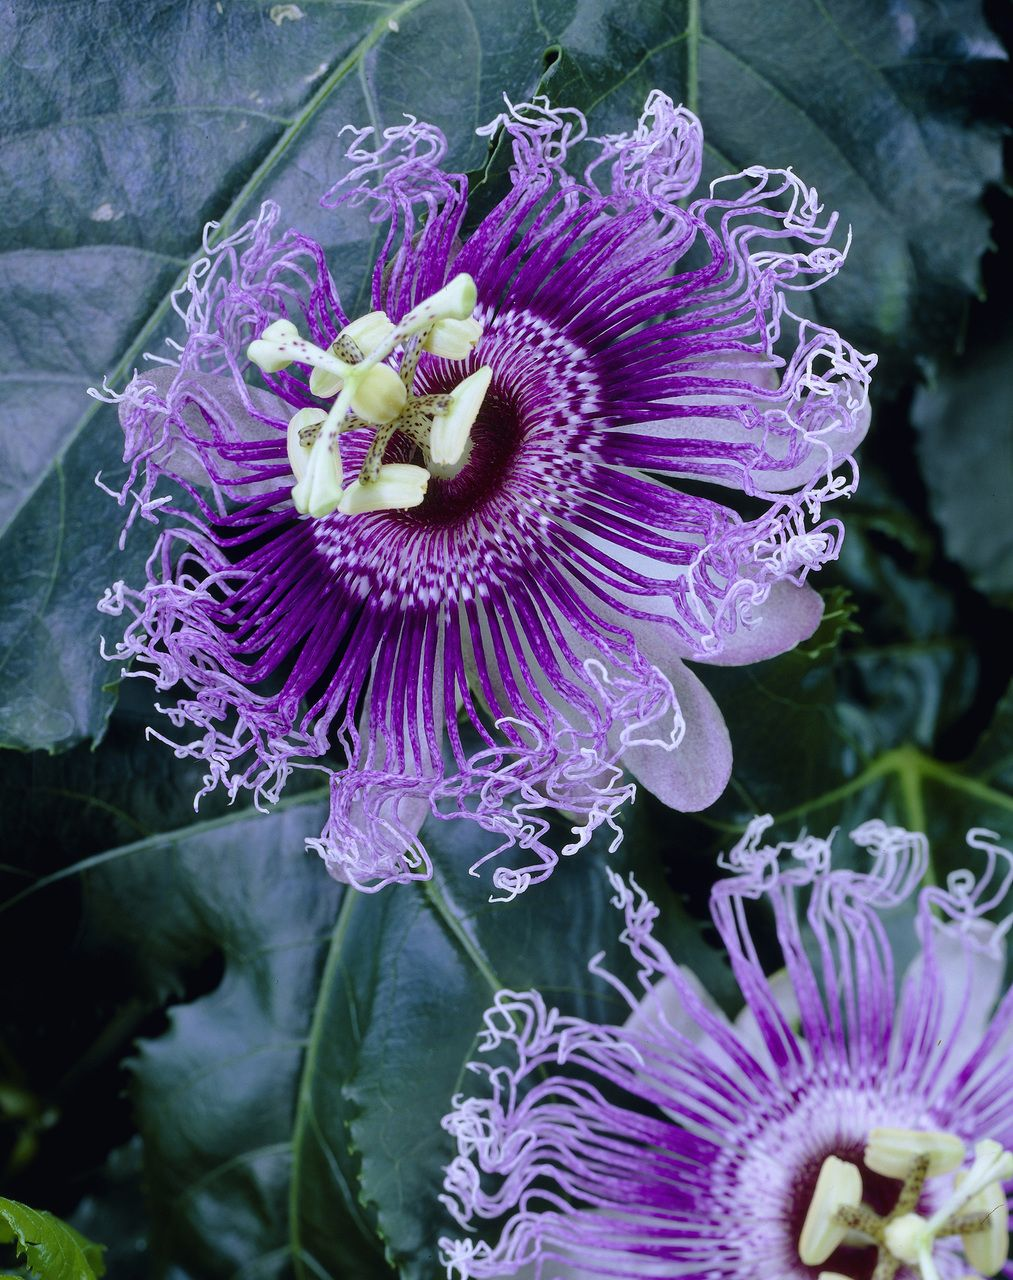 Good Friday Explained The Passion Flower Gardening Blog 99roots Com Passion Flower Rare Flowers Flower Seeds